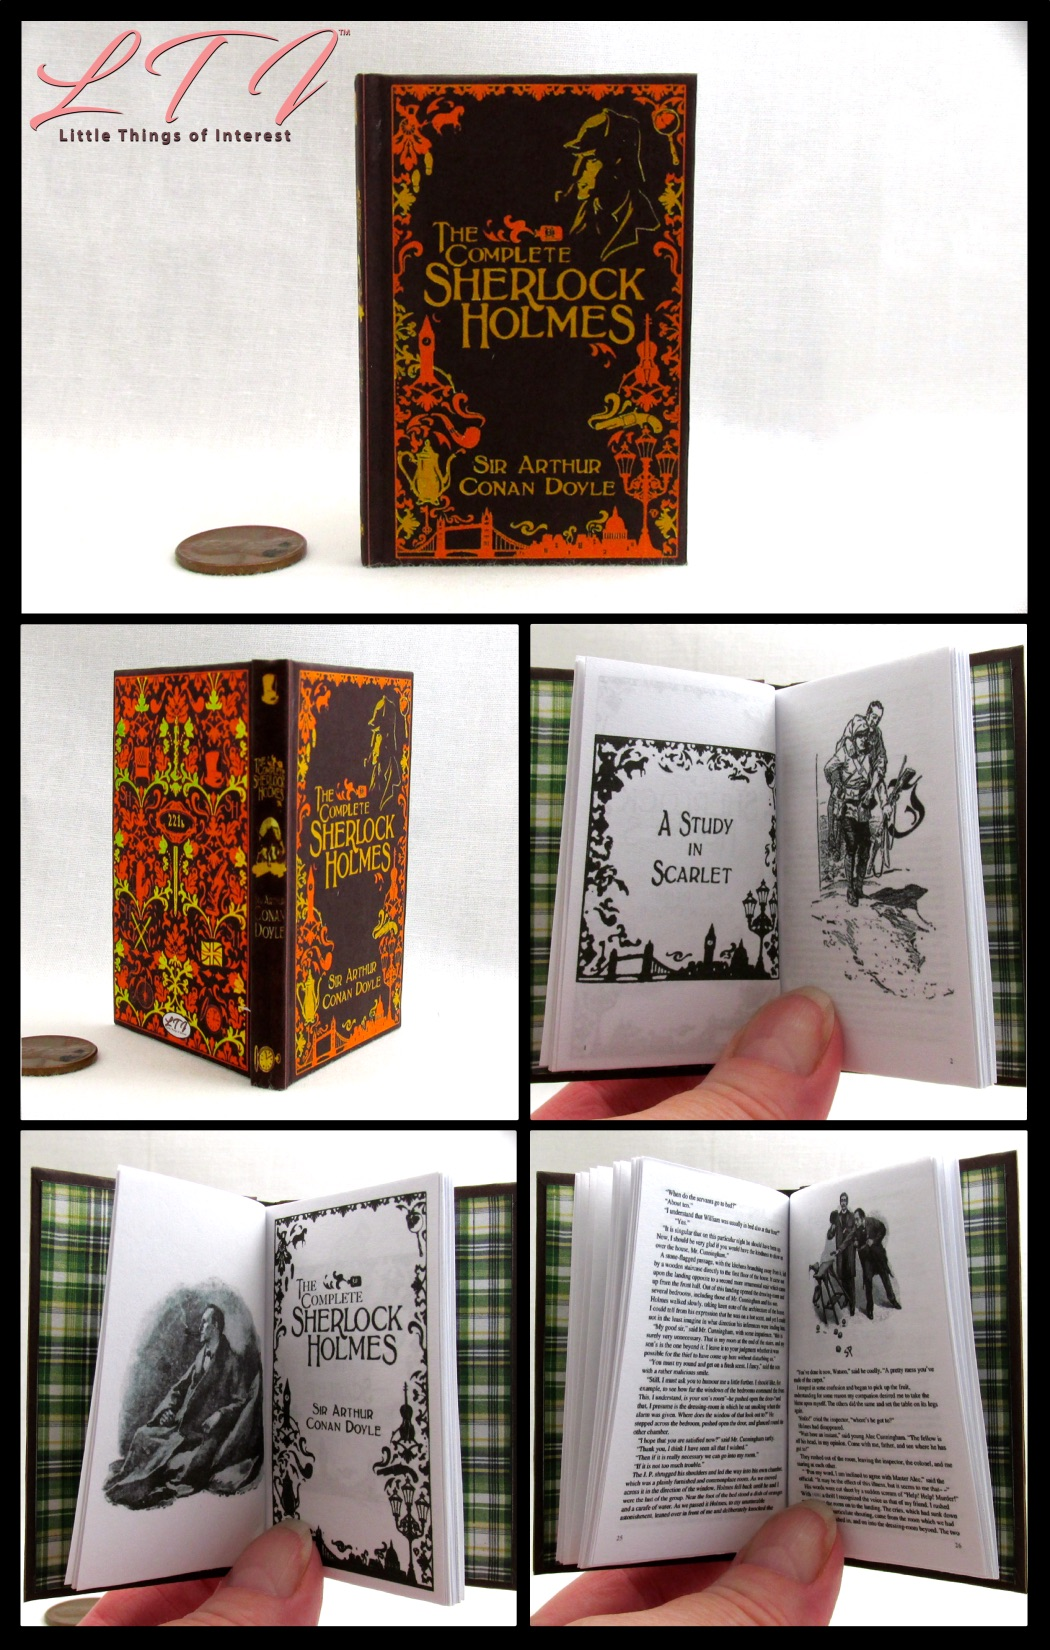 ILLUSTRATED SNOW WHITE 1:4 Scale Illustrated Readable Doll Book